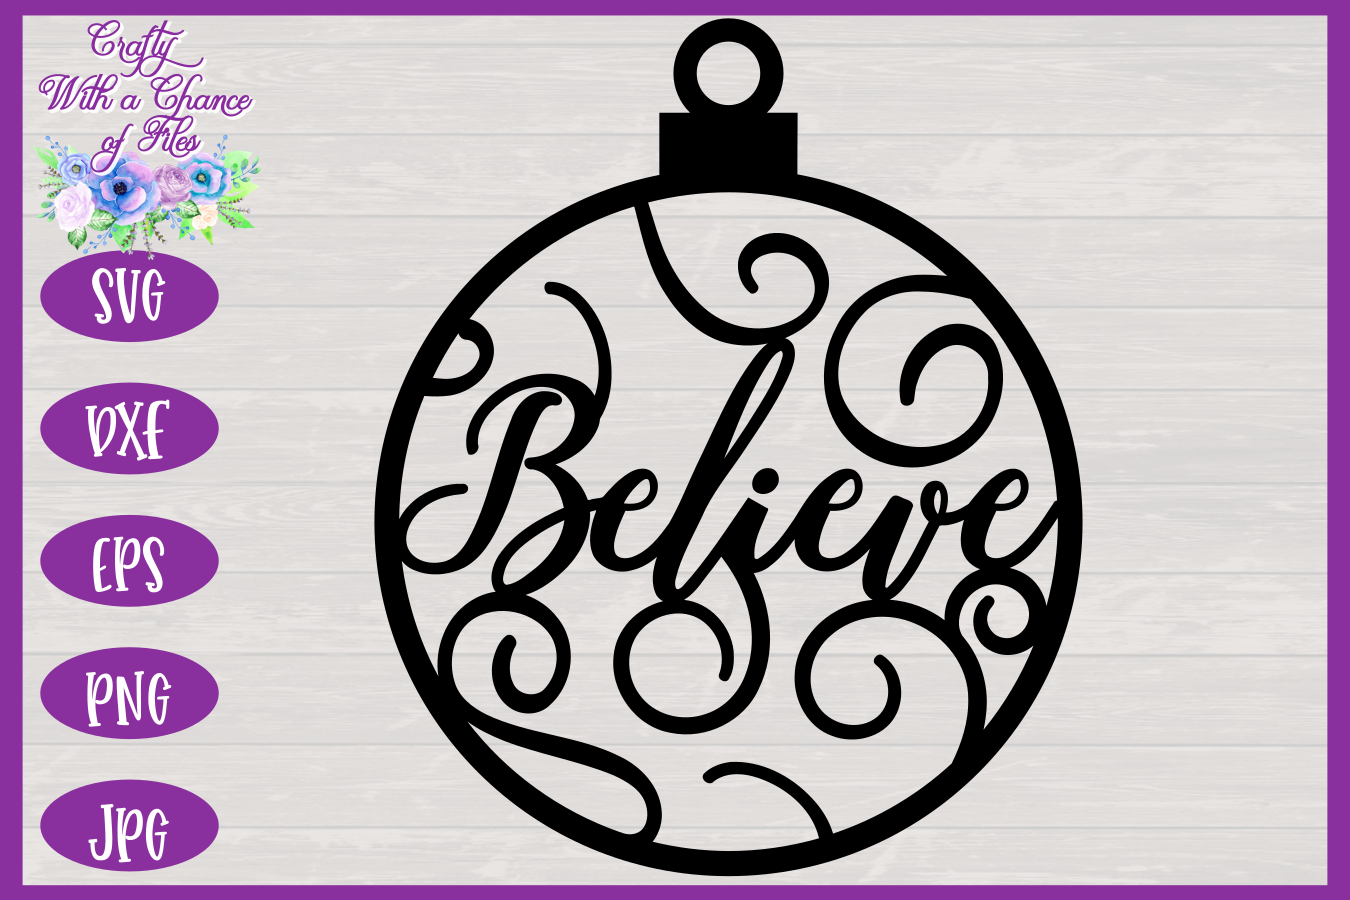 Christmas Word Ornaments SVG | Laser Cut Baubles SVG example image 5